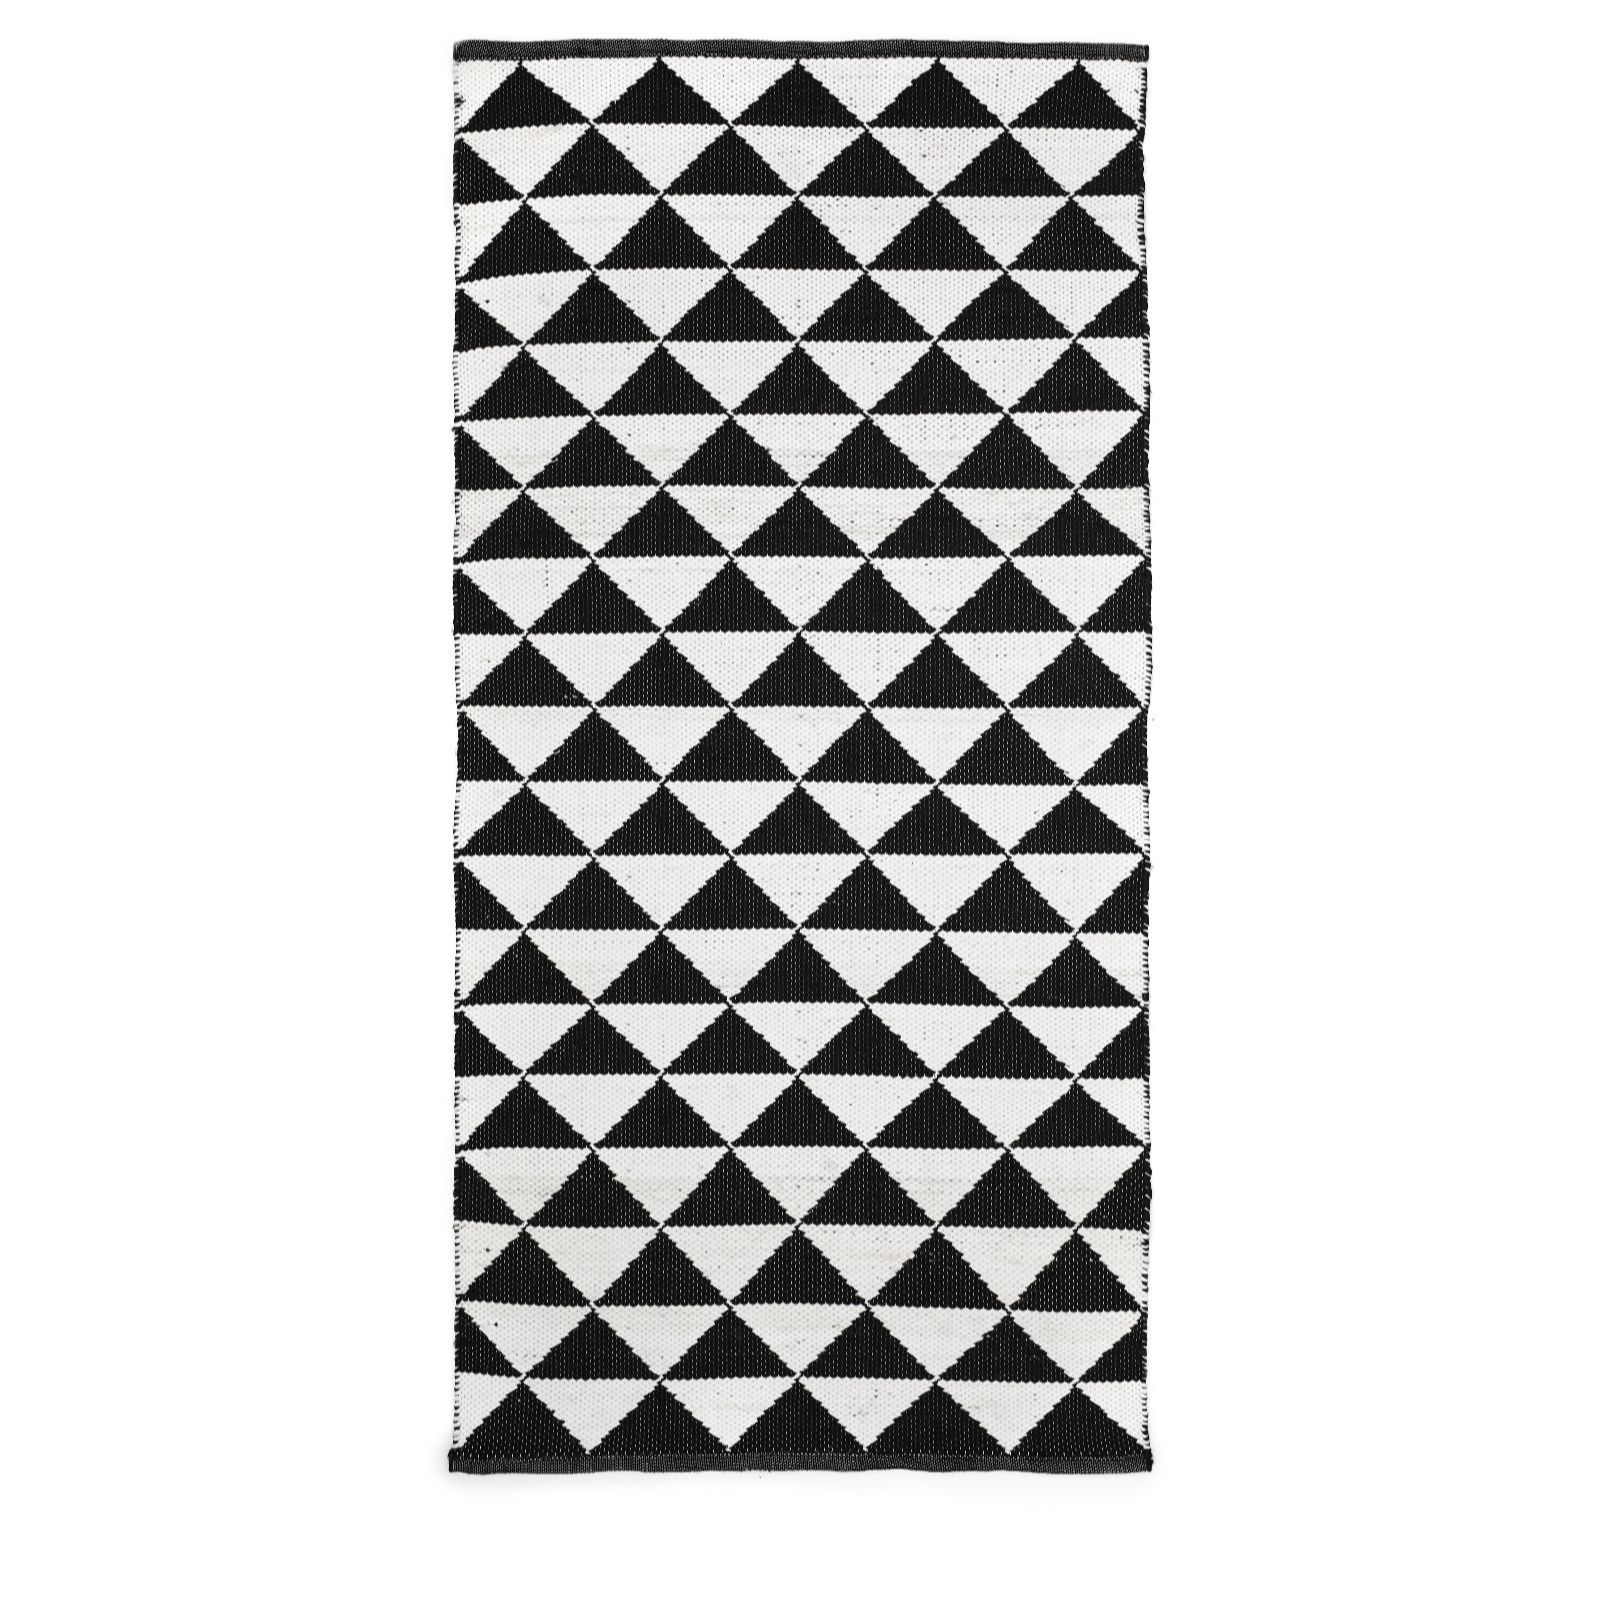 A Contemporary Reversible Rug From Bundleberry By Amanda Holden Boasting A Striking Geometric Design And Suitable For Using I With Images Outdoor Rugs Reversible Rug Rugs